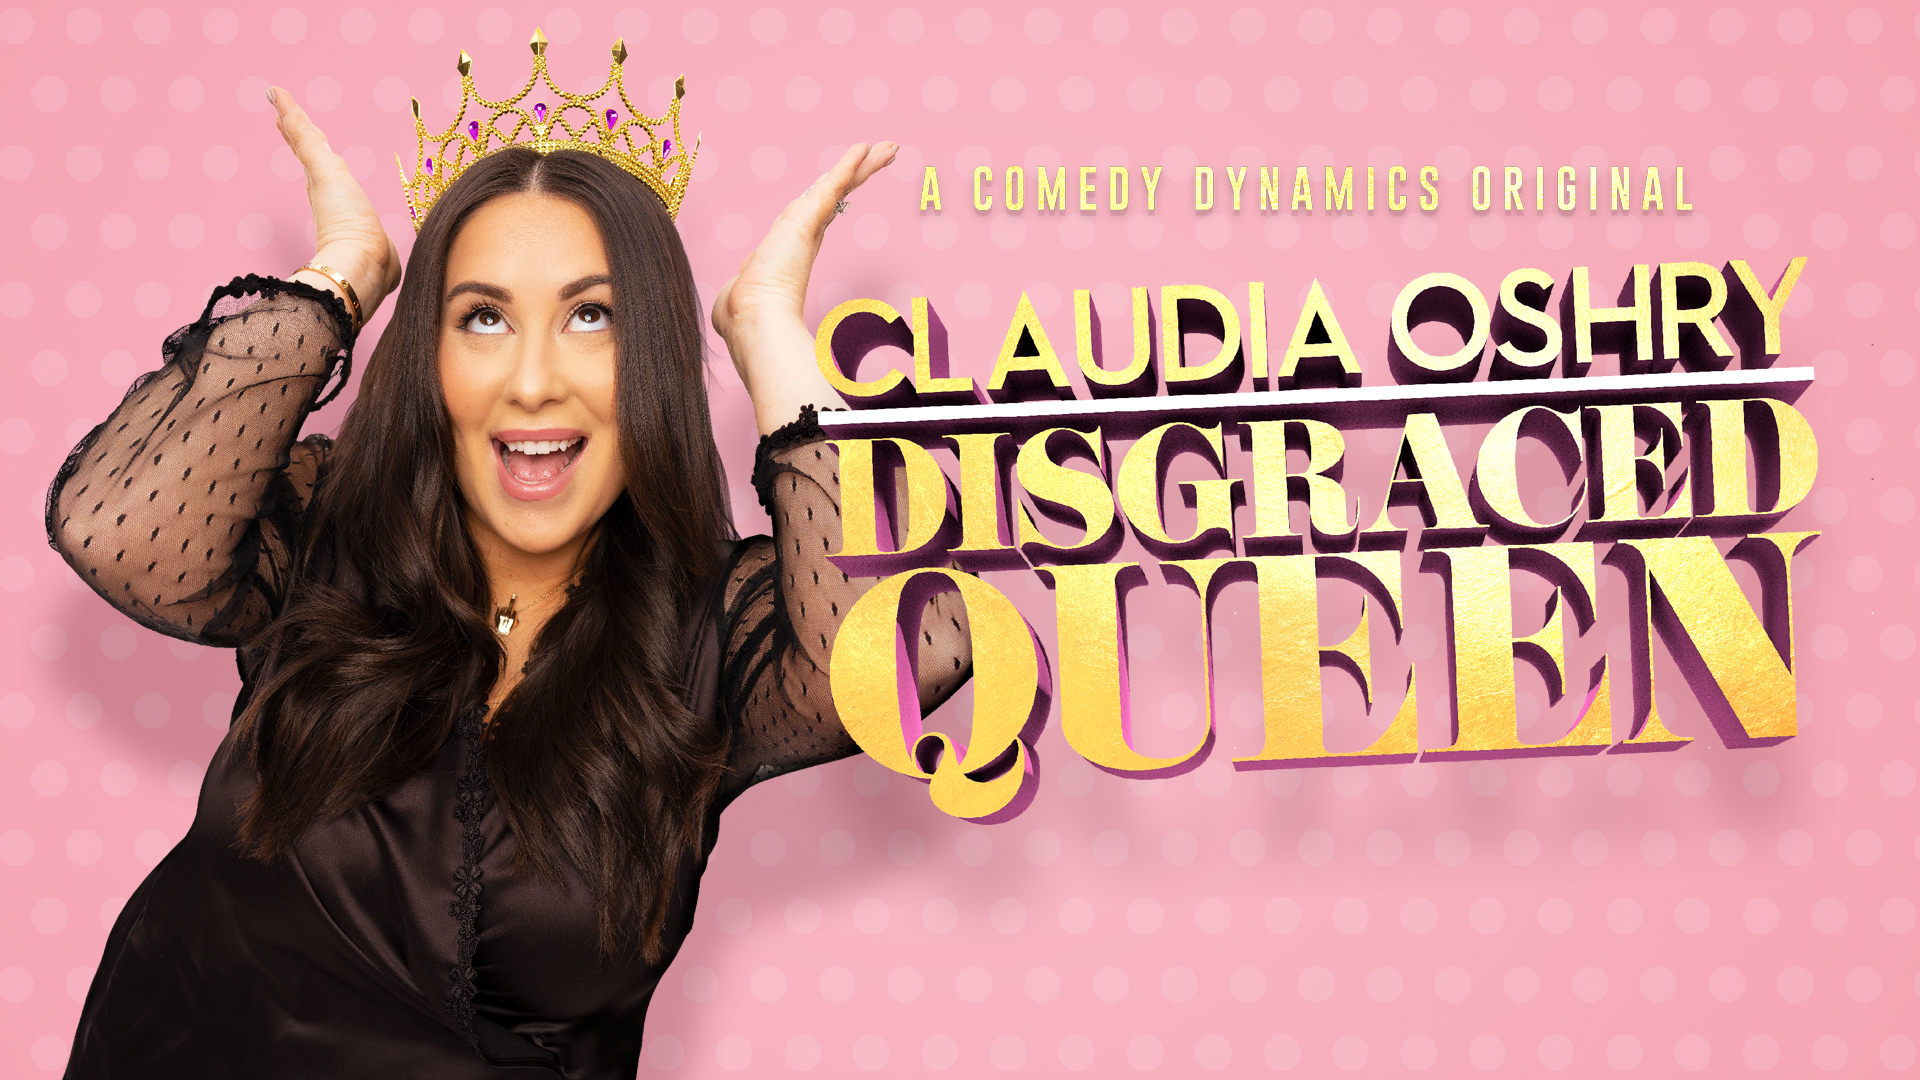 Claudia Oshry: Disgraced Queen